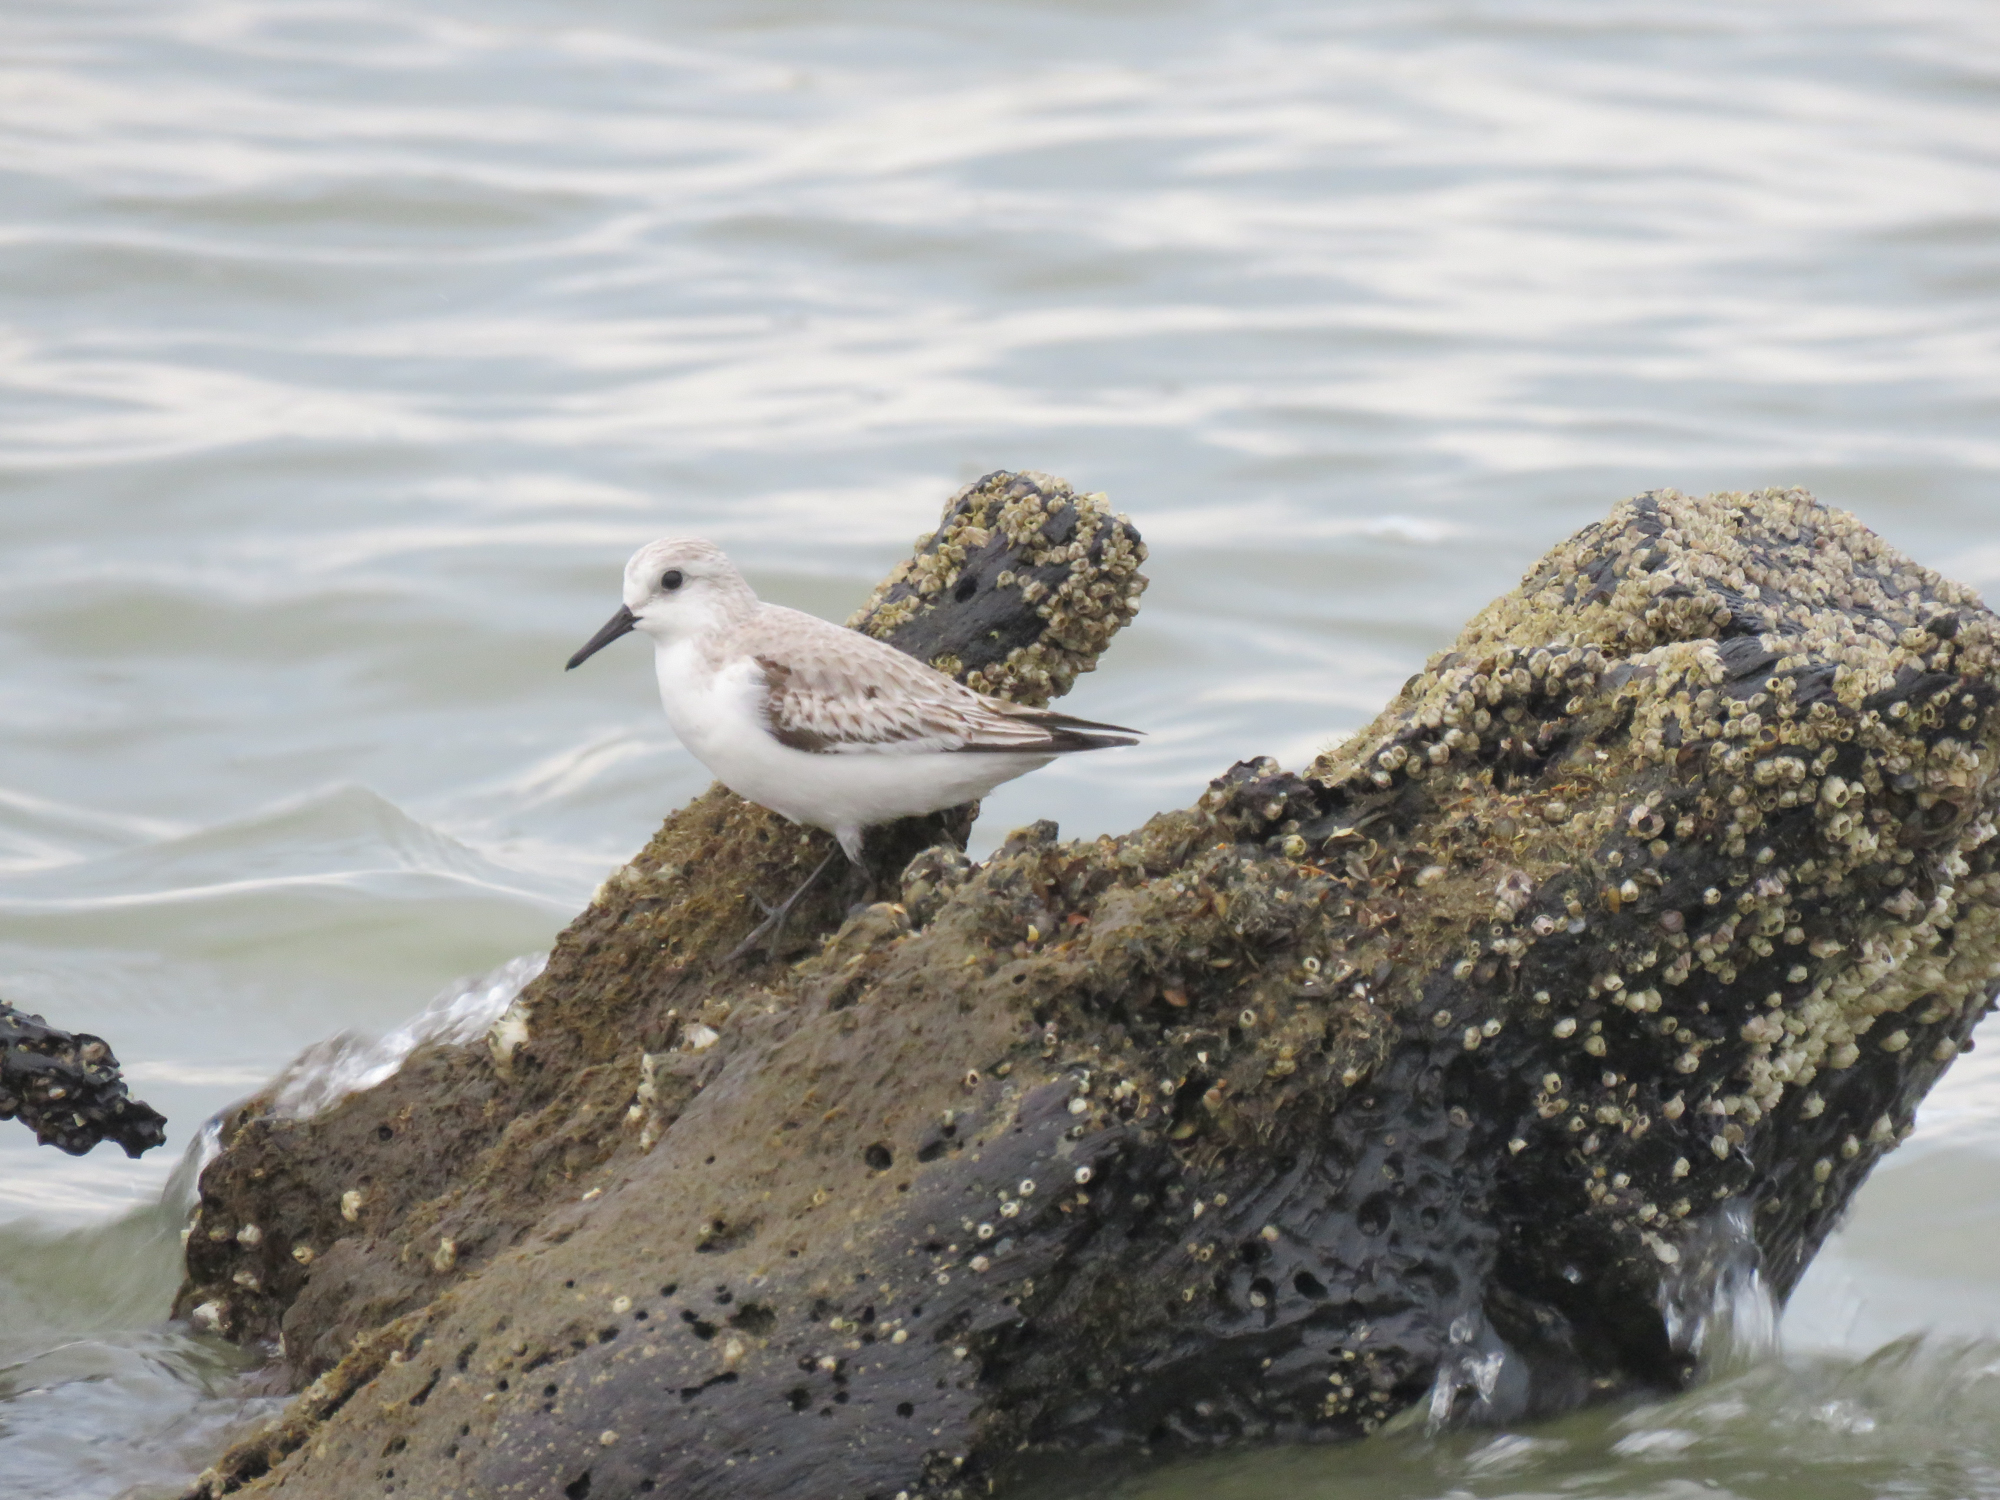 Sanderlings are the tiny birds that seem to race the waves